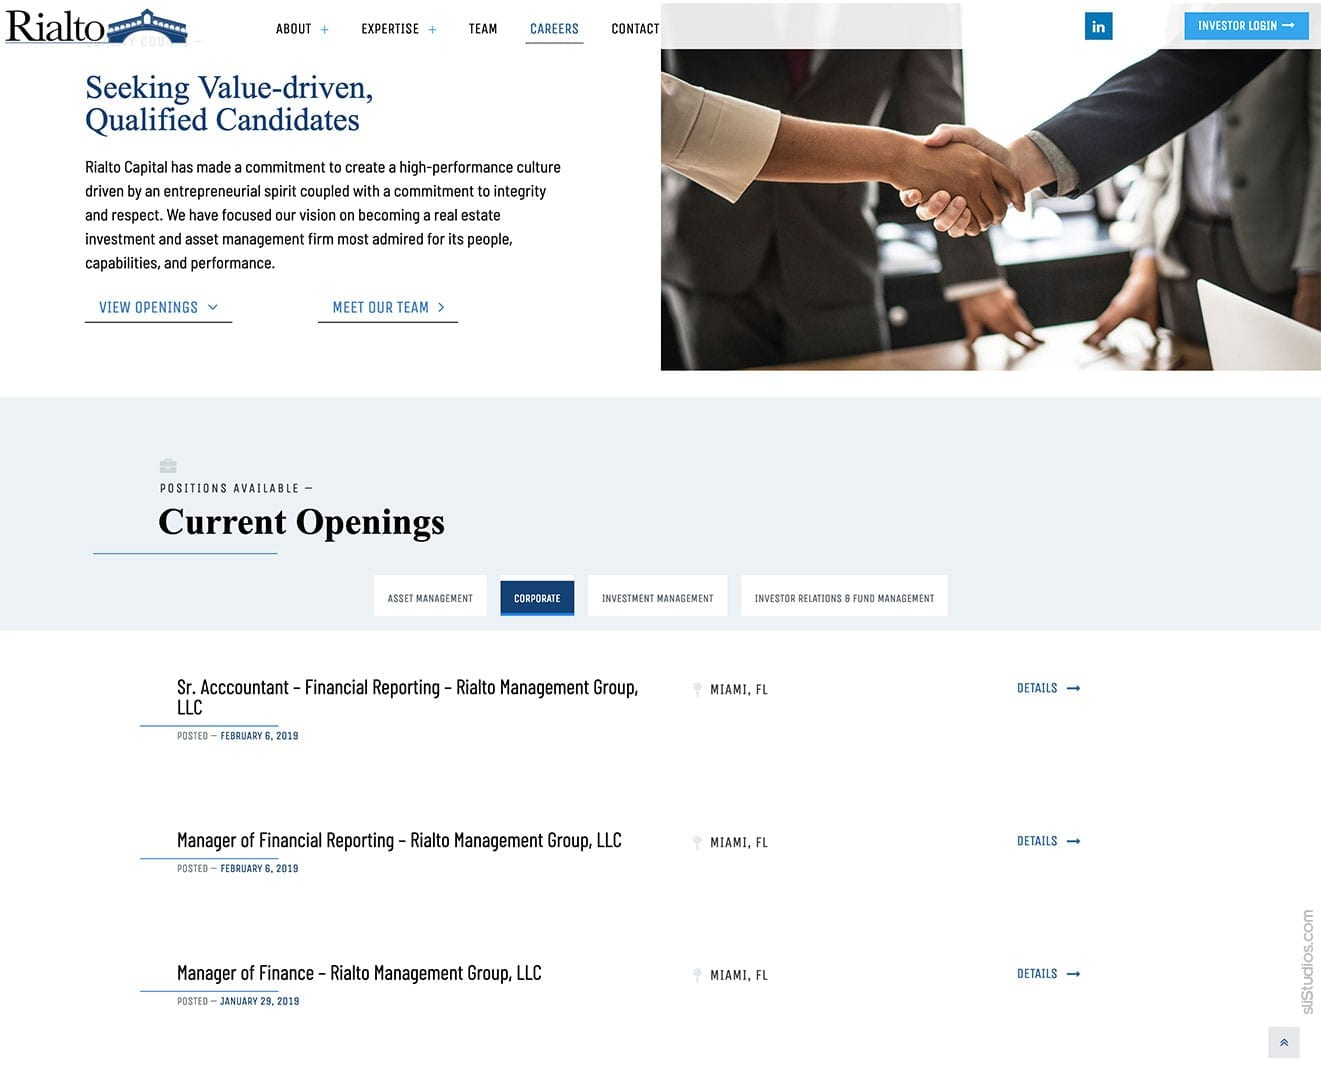 Career Page with Job Listings - Rialto Capital